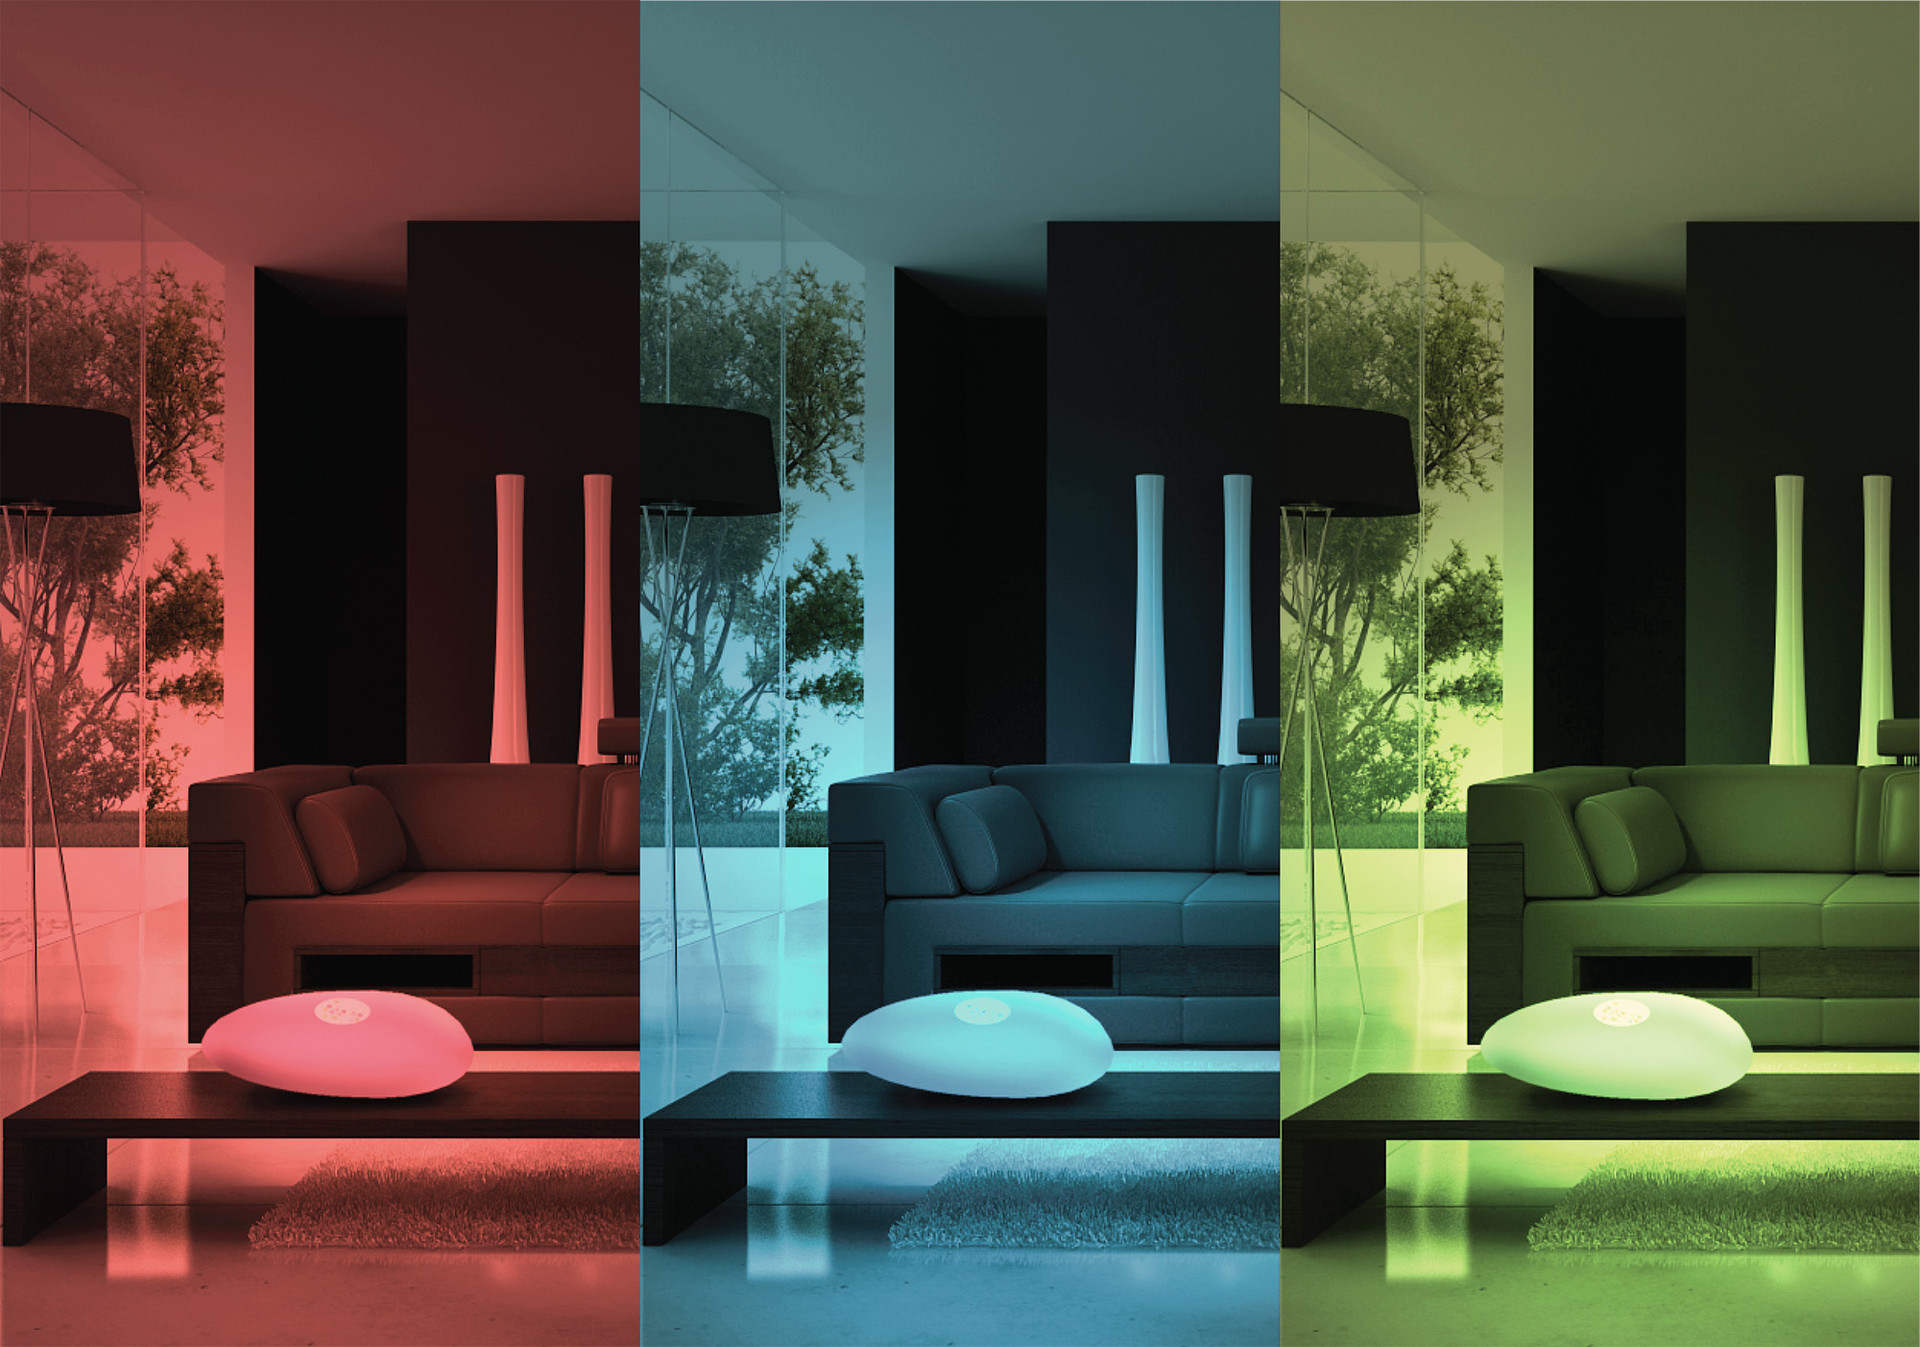 The colorful LED light, controlled by a touch screen, enables the user to create infinite interior moods.